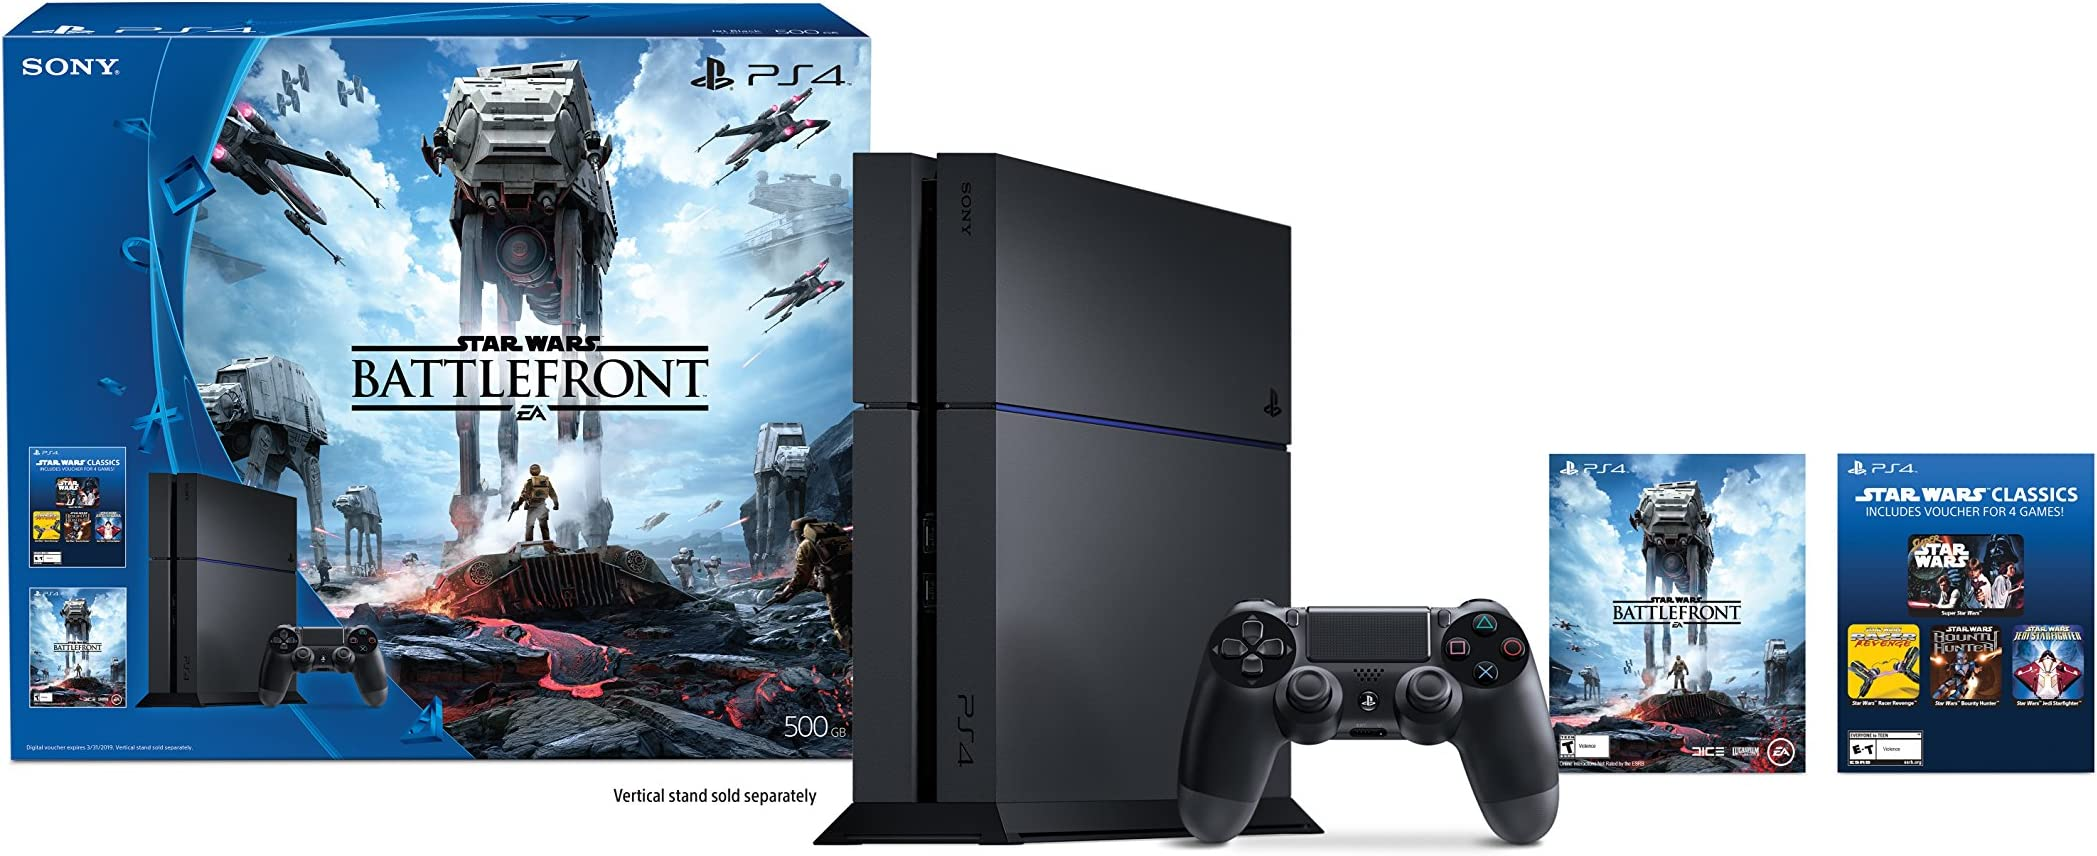 Playstation 4 500gb Console Star Wars Battlefront Sony Slim Hits Bundle Jet Black Region 3 Image Unavailable Not Available For